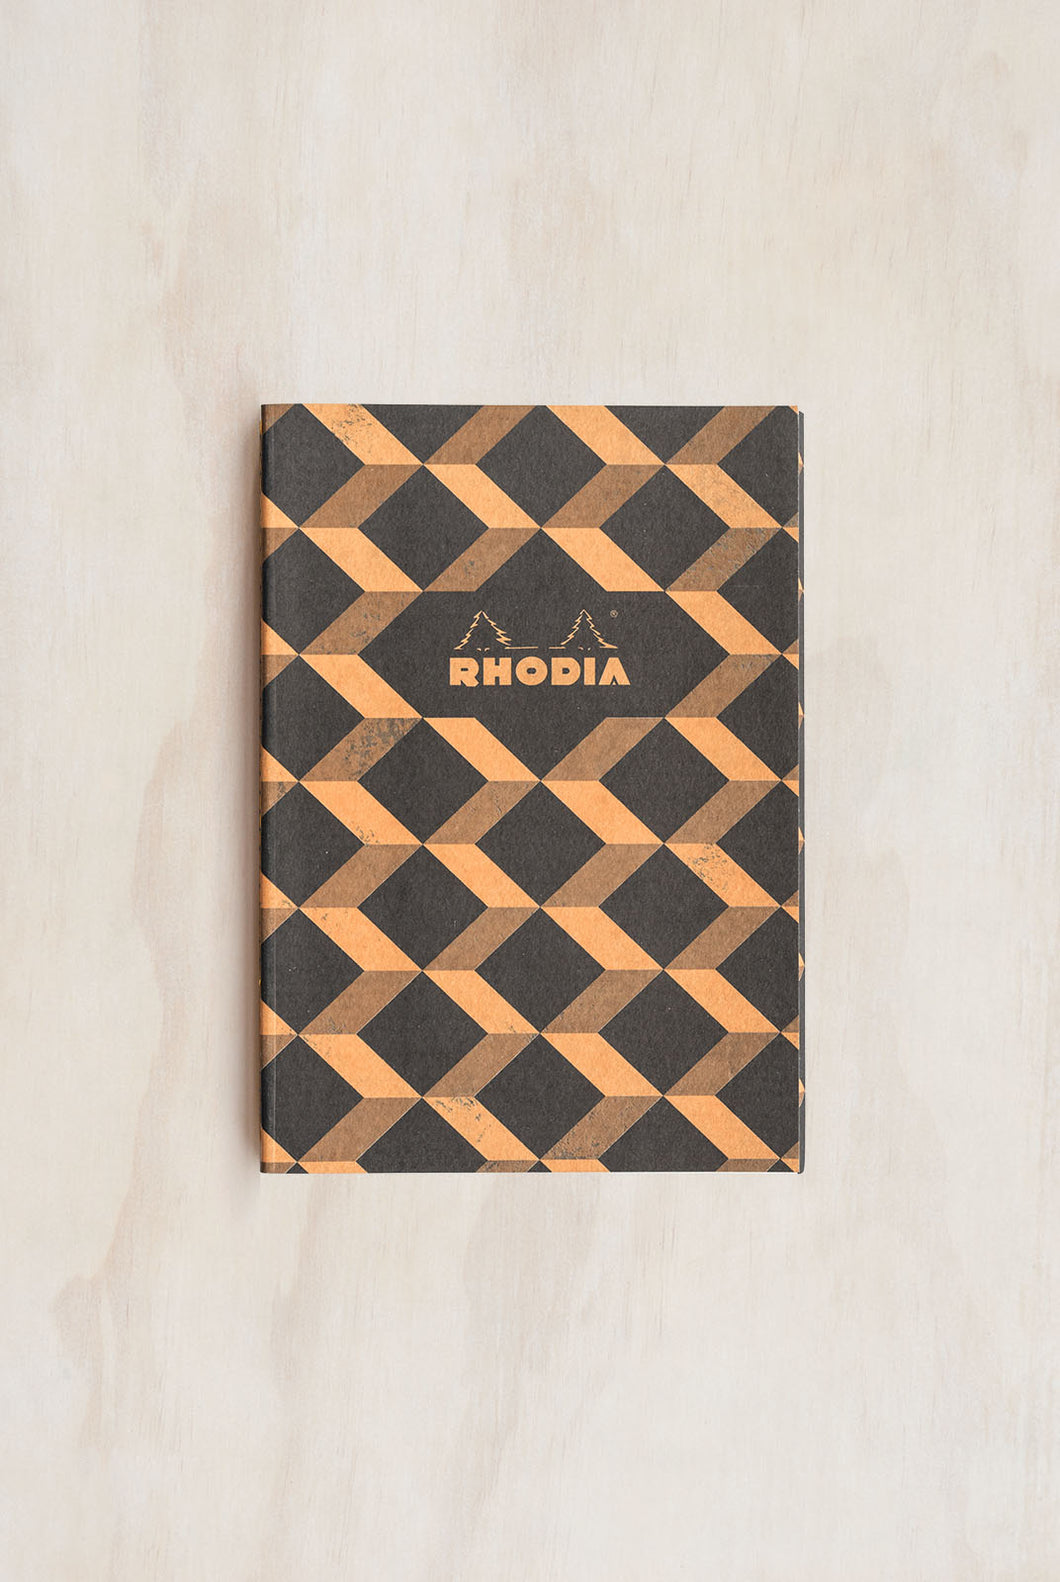 Rhodia - Heritage Notebook - Sewn Spine - Ruled - A5 (15x21cm) - Escher Black